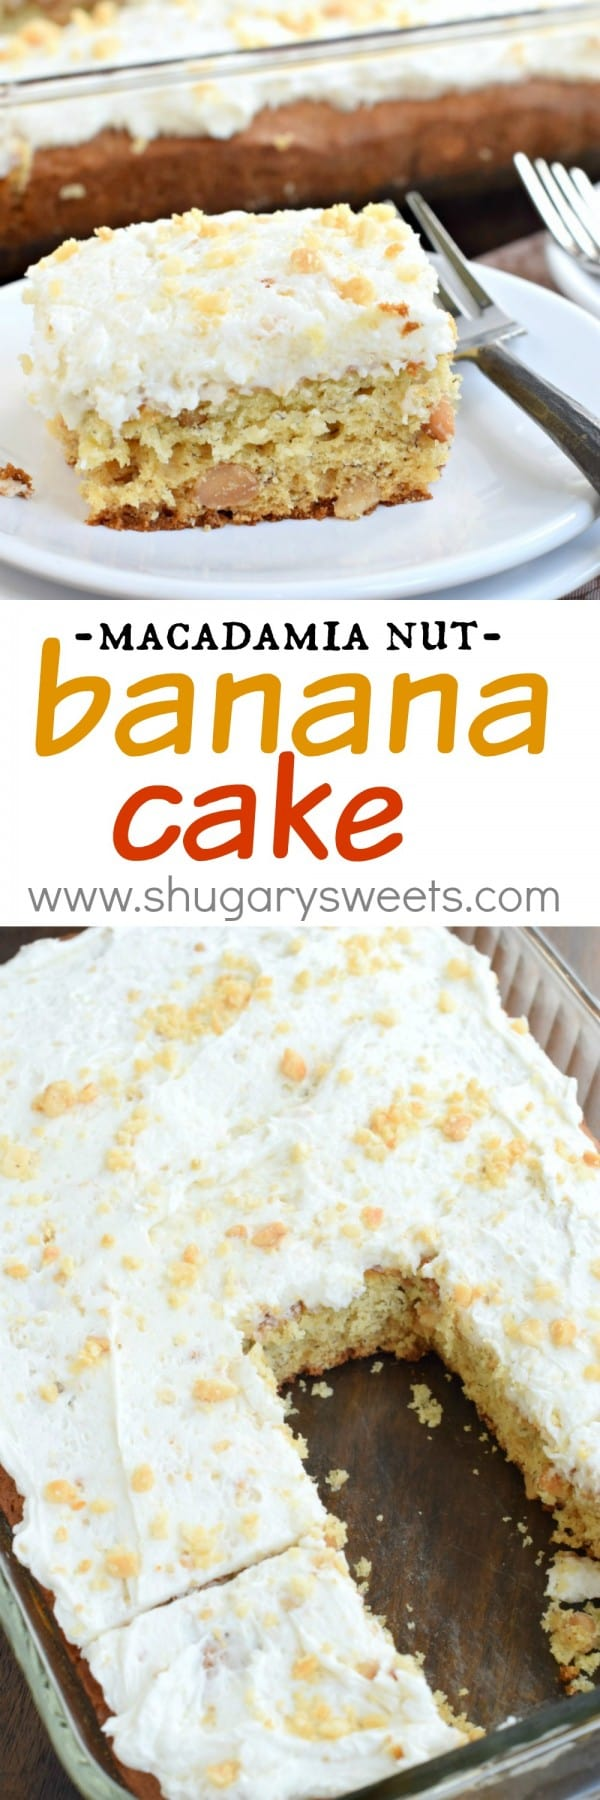 Looking for a unique snack cake recipe? This Banana Macadamia Nut Cake is a great treat to enjoy in the afternoon with your cup of coffee!